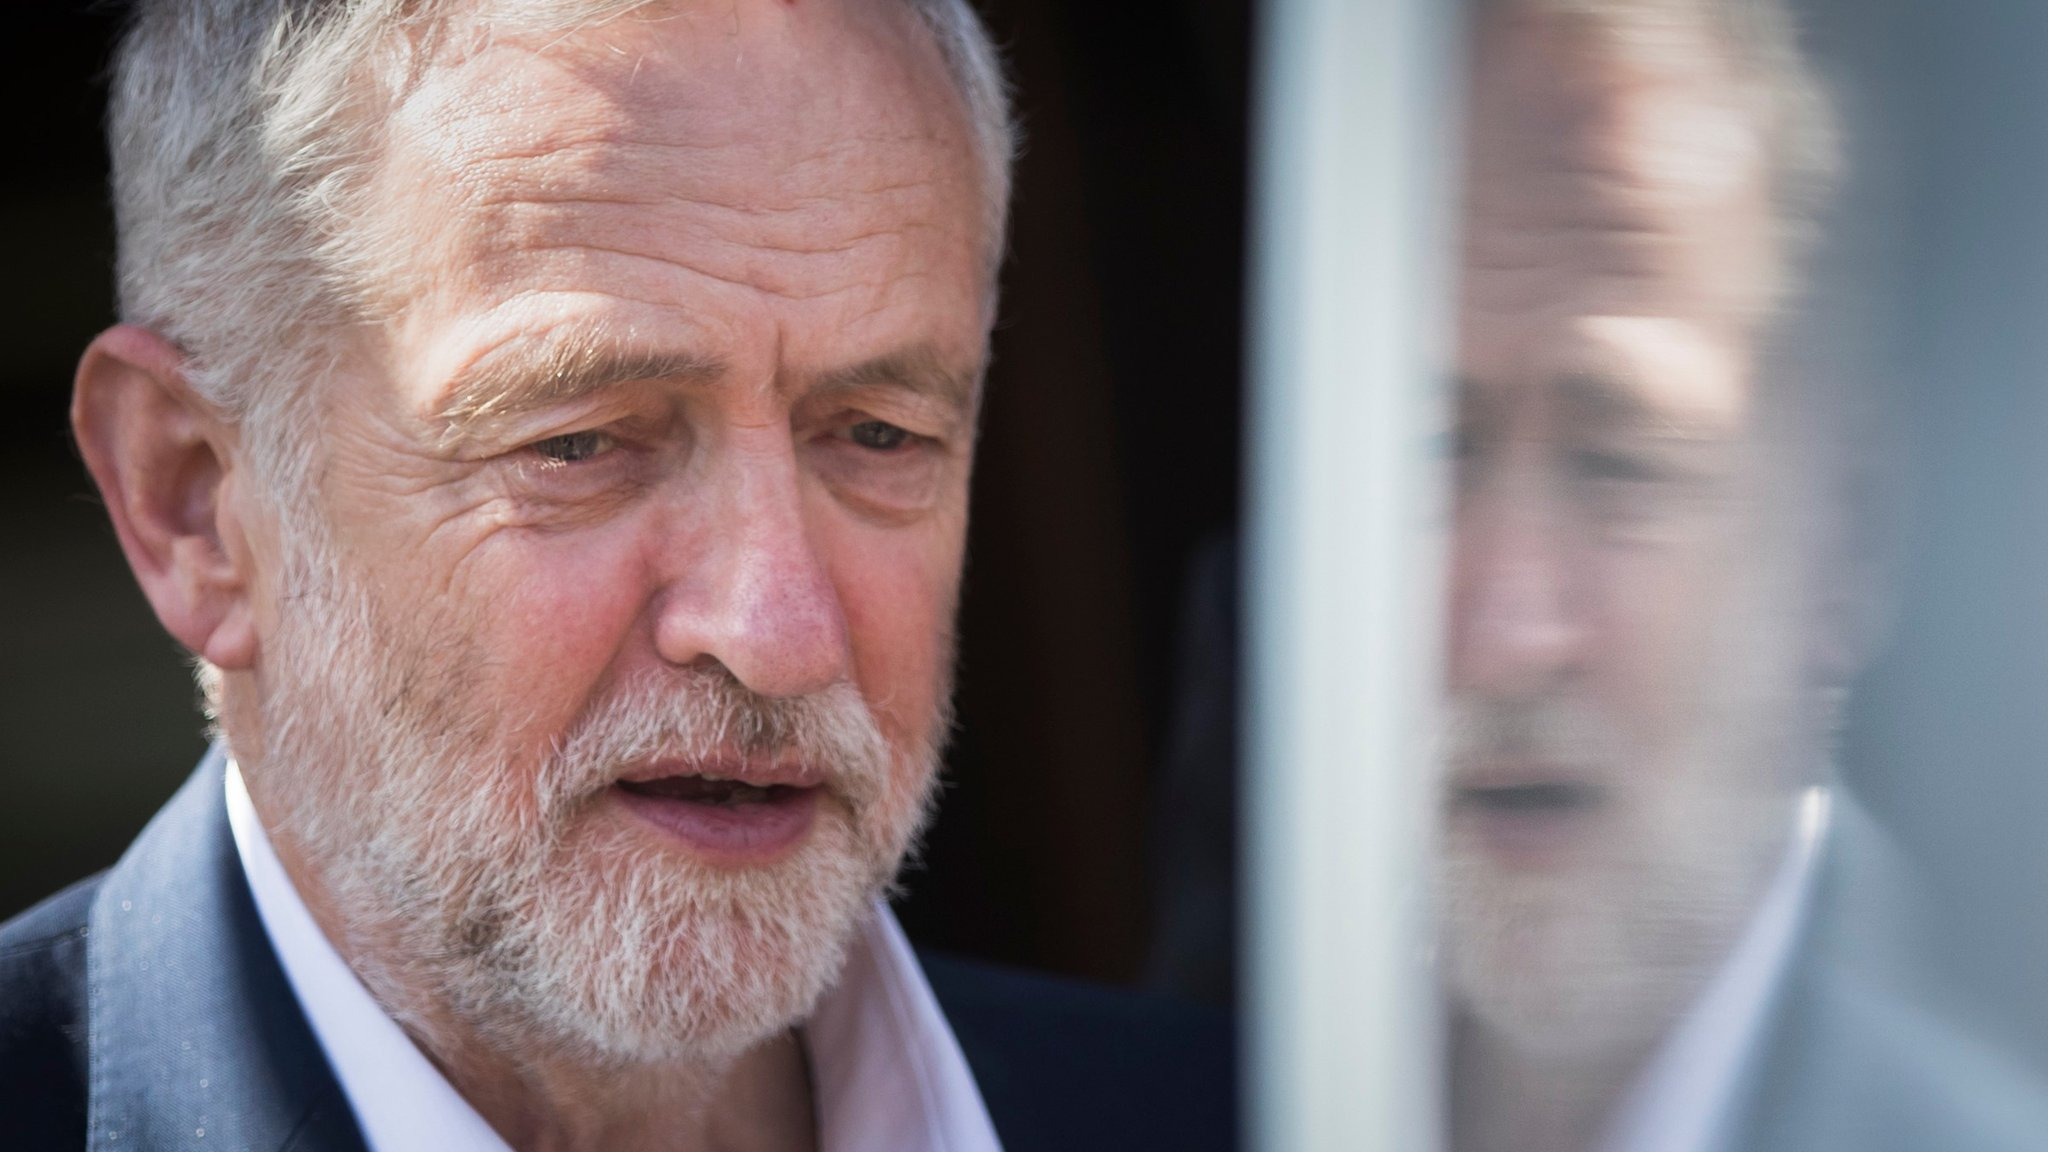 General election 2017: Labour plans four new bank holidays